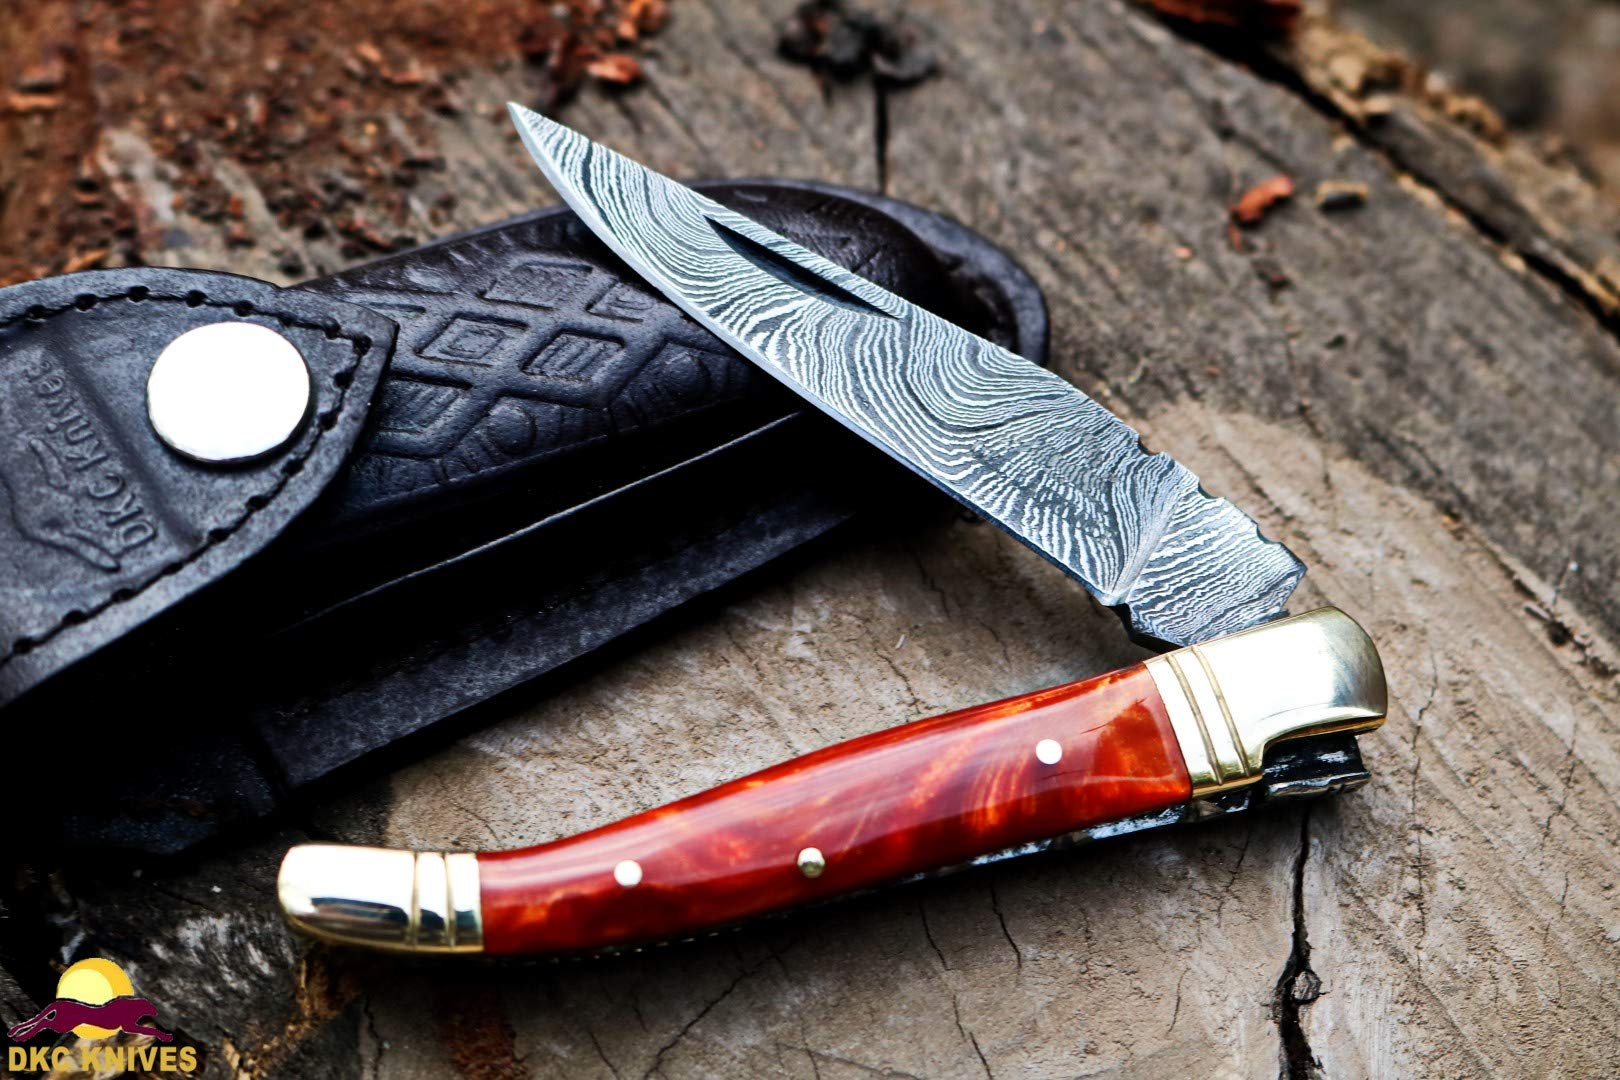 DKC Knives DKC-698-OP-P-DS Orange Pearl Cobra Resin Prince Laguiole Damascus Steel Folding Pocket Knife 4'' Folded 7.25'' Open 3oz 3.5'' Blade Prince Series